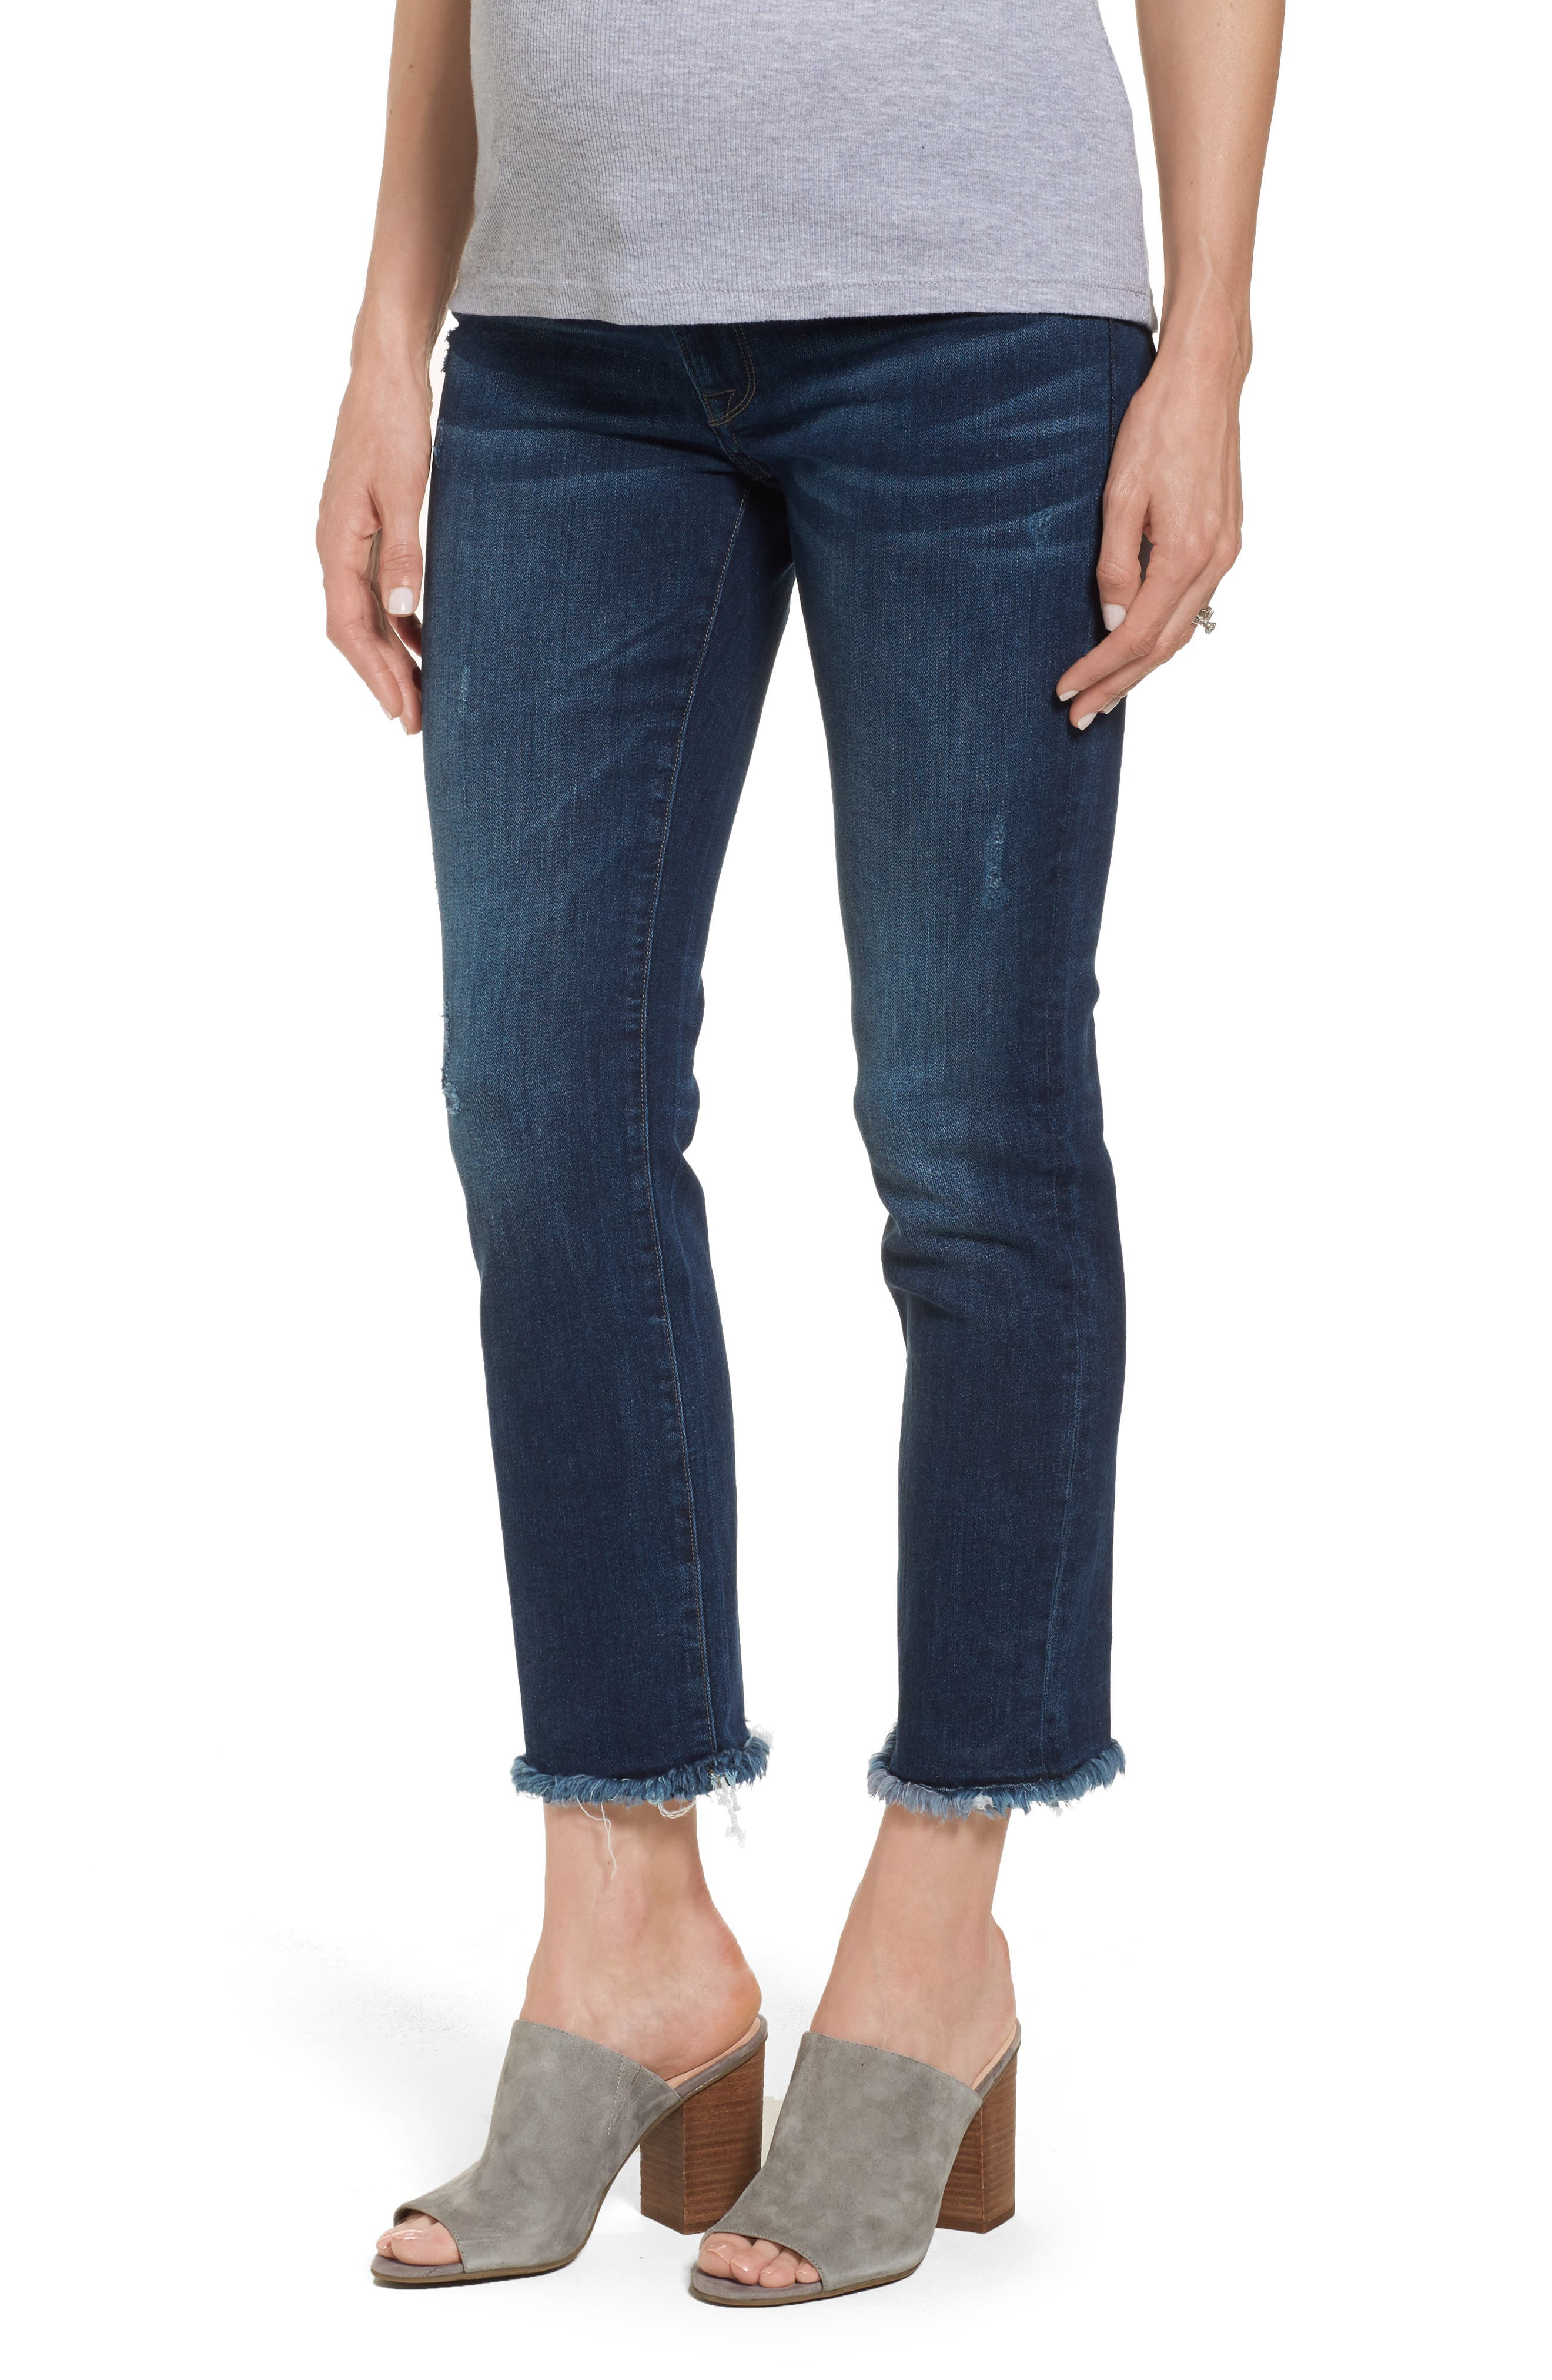 Mara Maternity Ankle Jeans,                         Main,                         color, 405